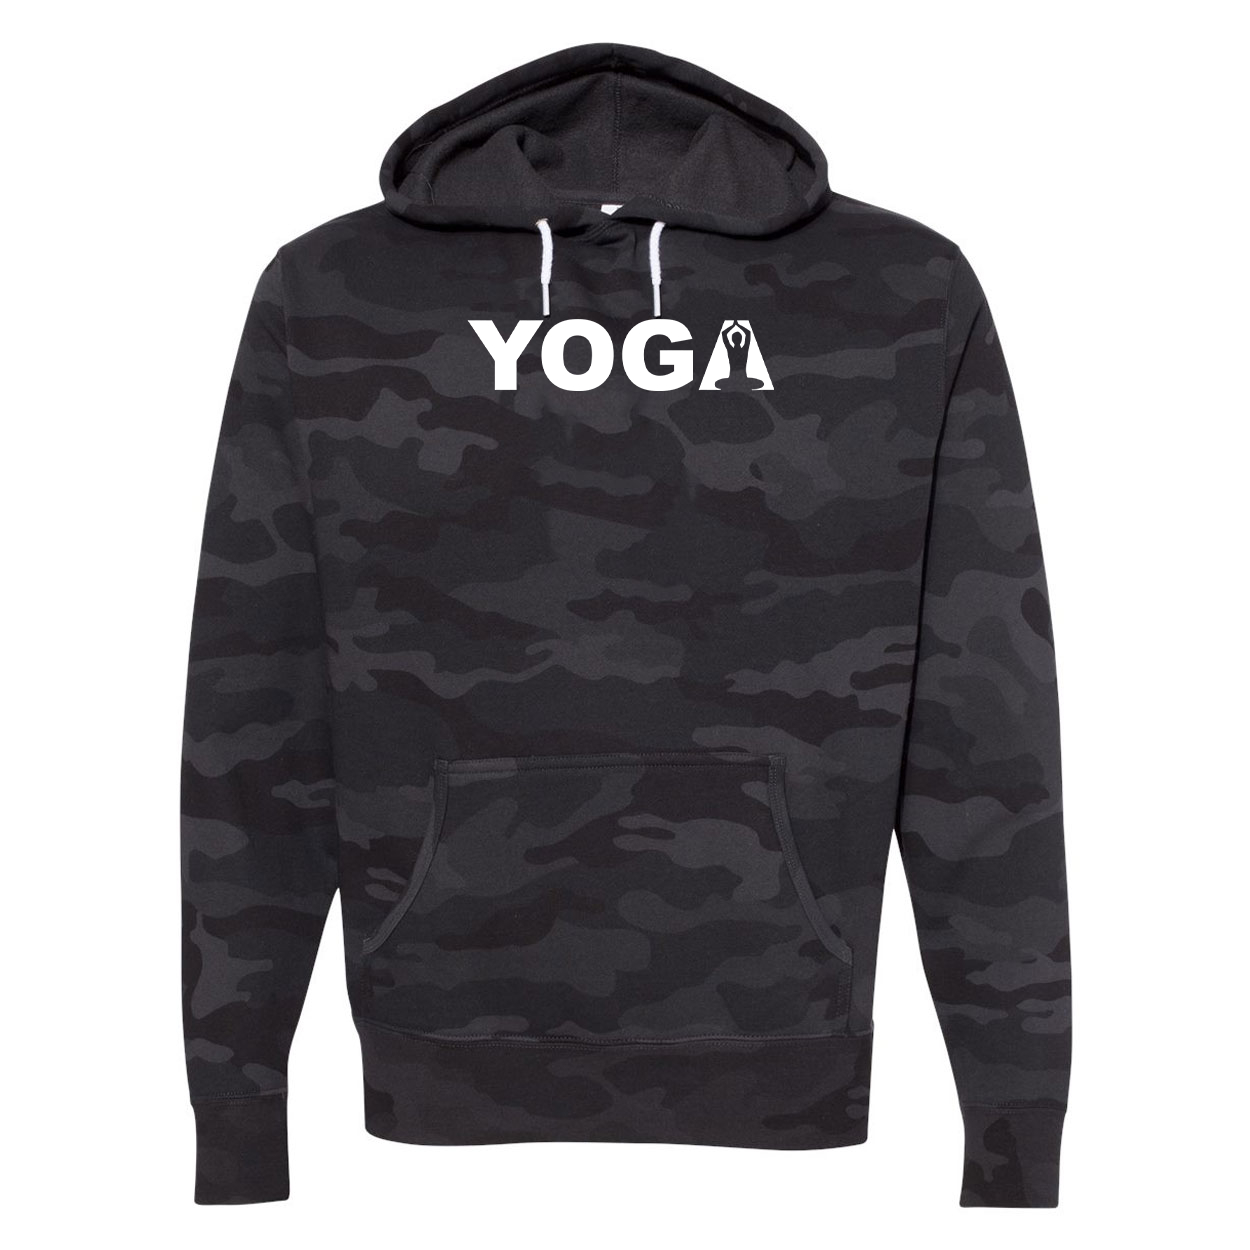 Yoga Meditation Logo Classic Unisex Hooded Sweatshirt Black Camo (White Logo)